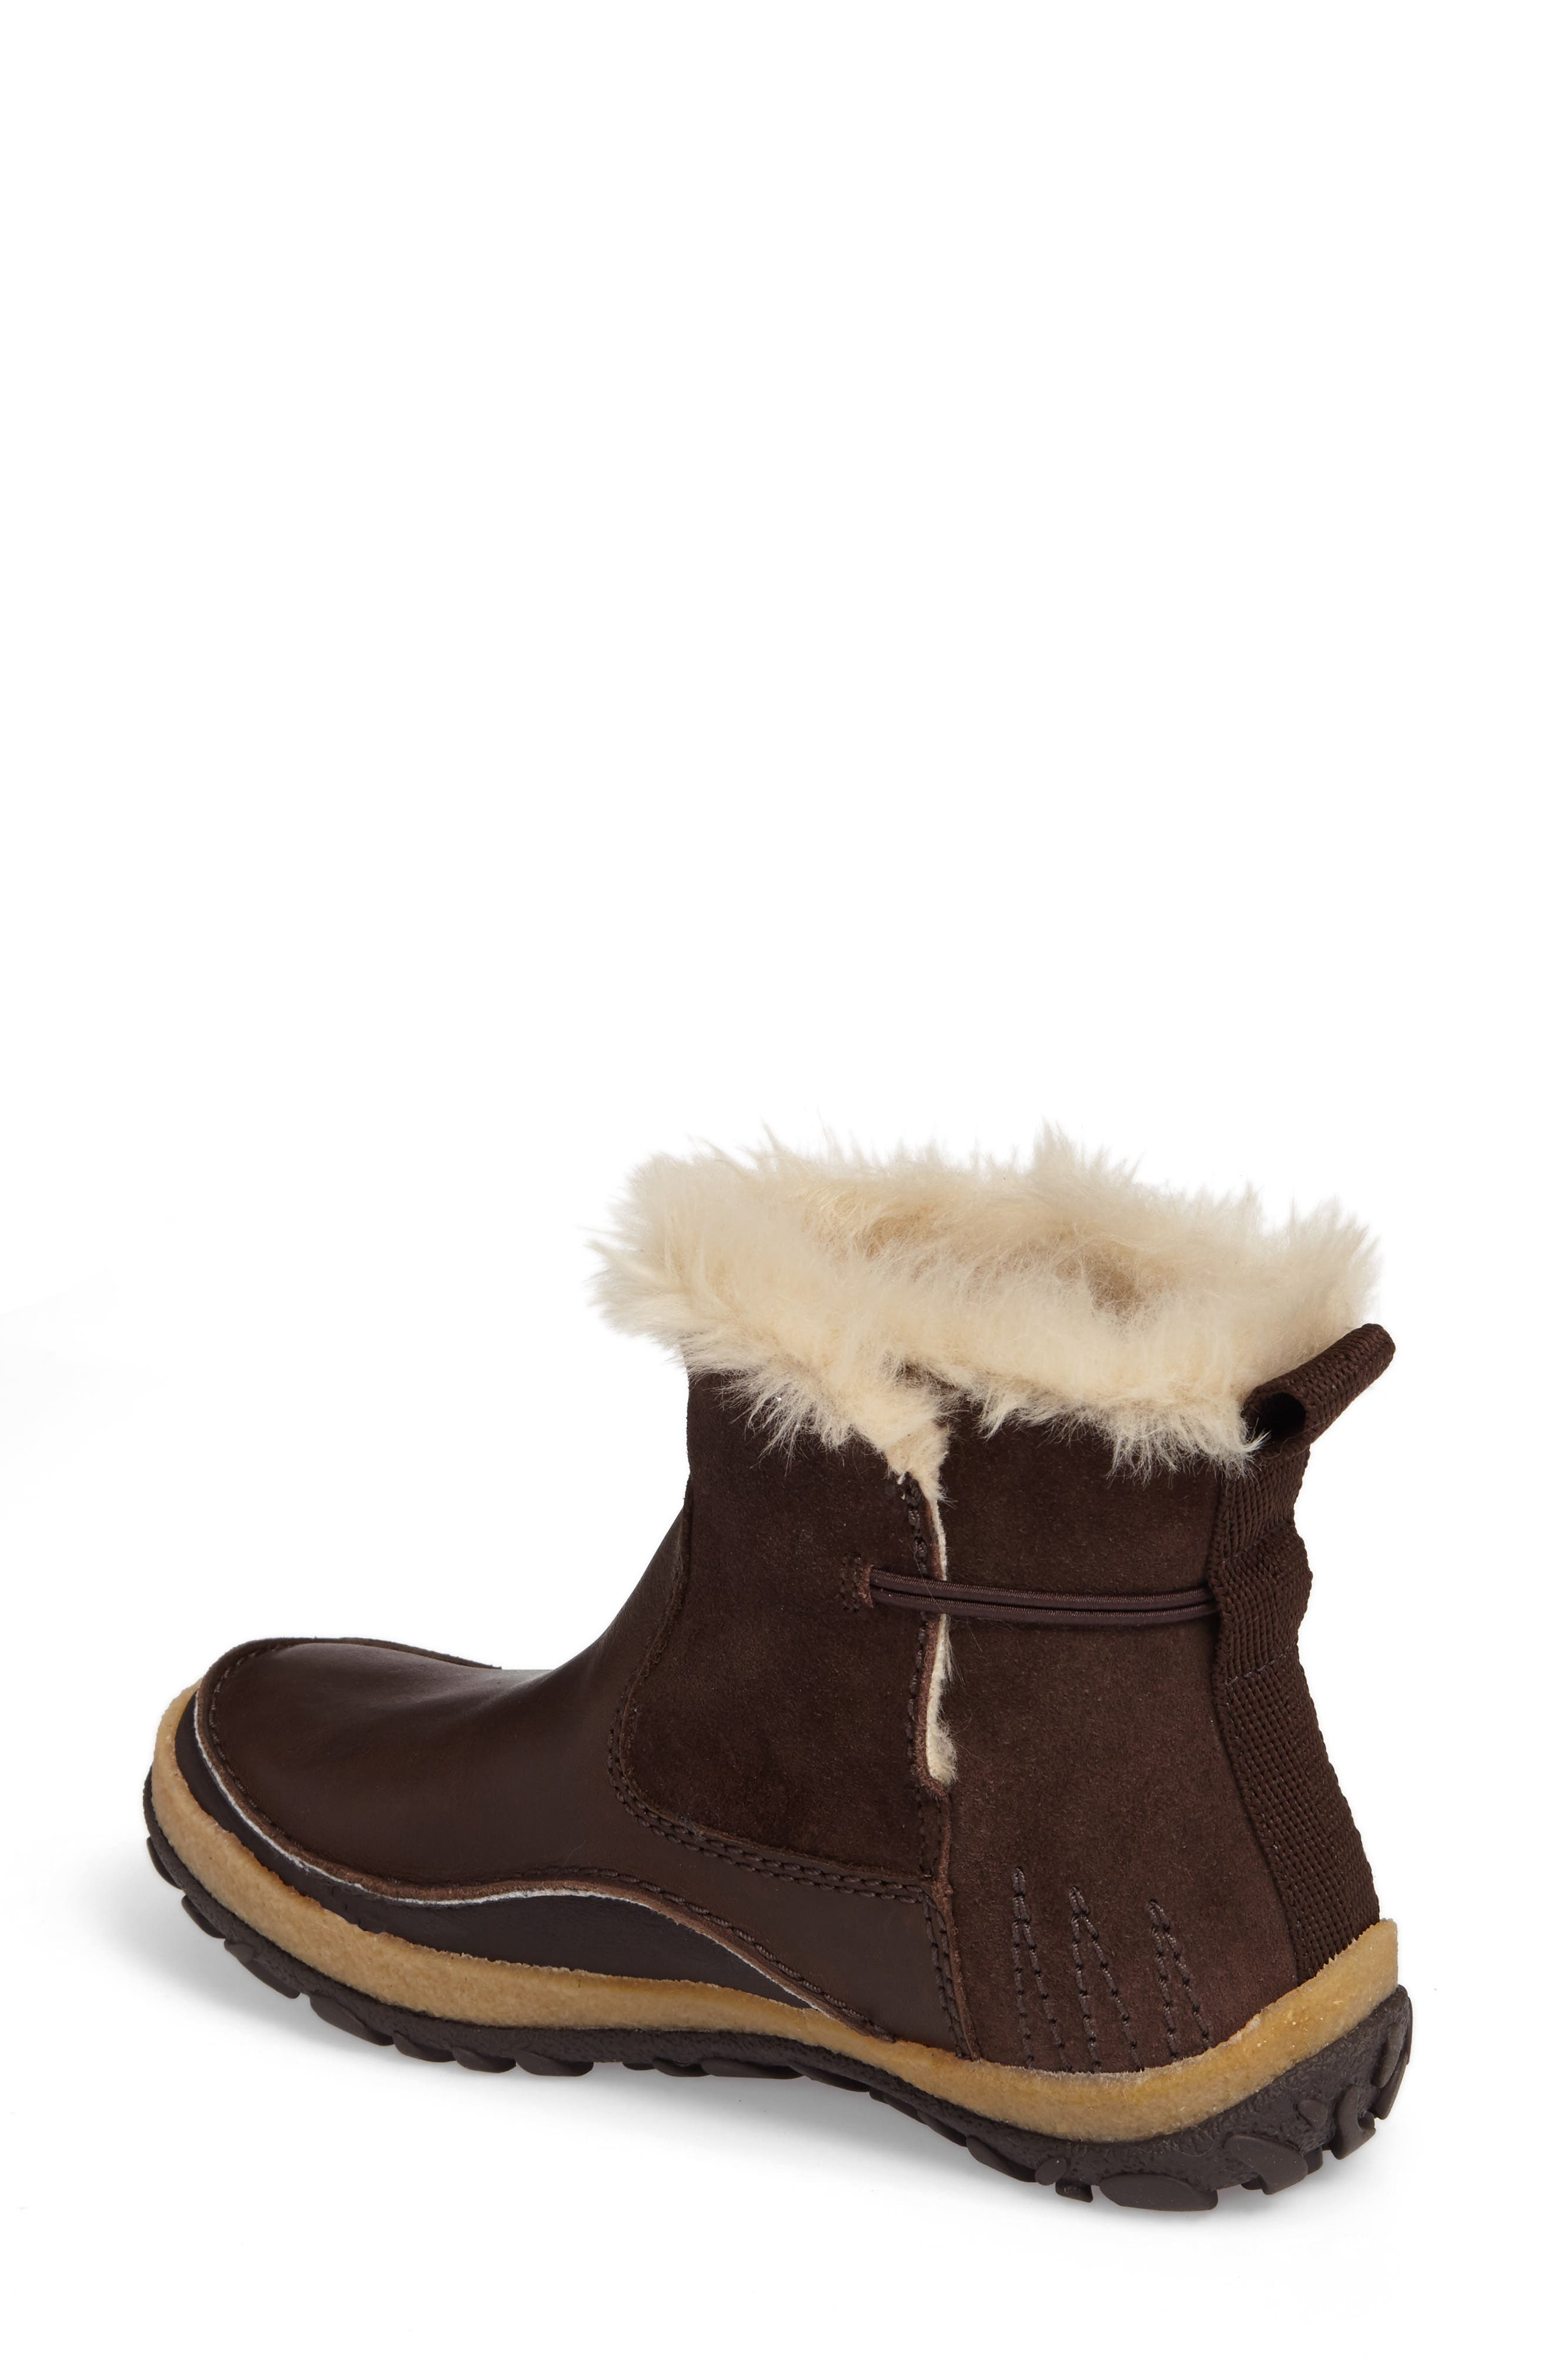 Tremblant Pull-On Polar Waterproof Bootie,                             Alternate thumbnail 7, color,